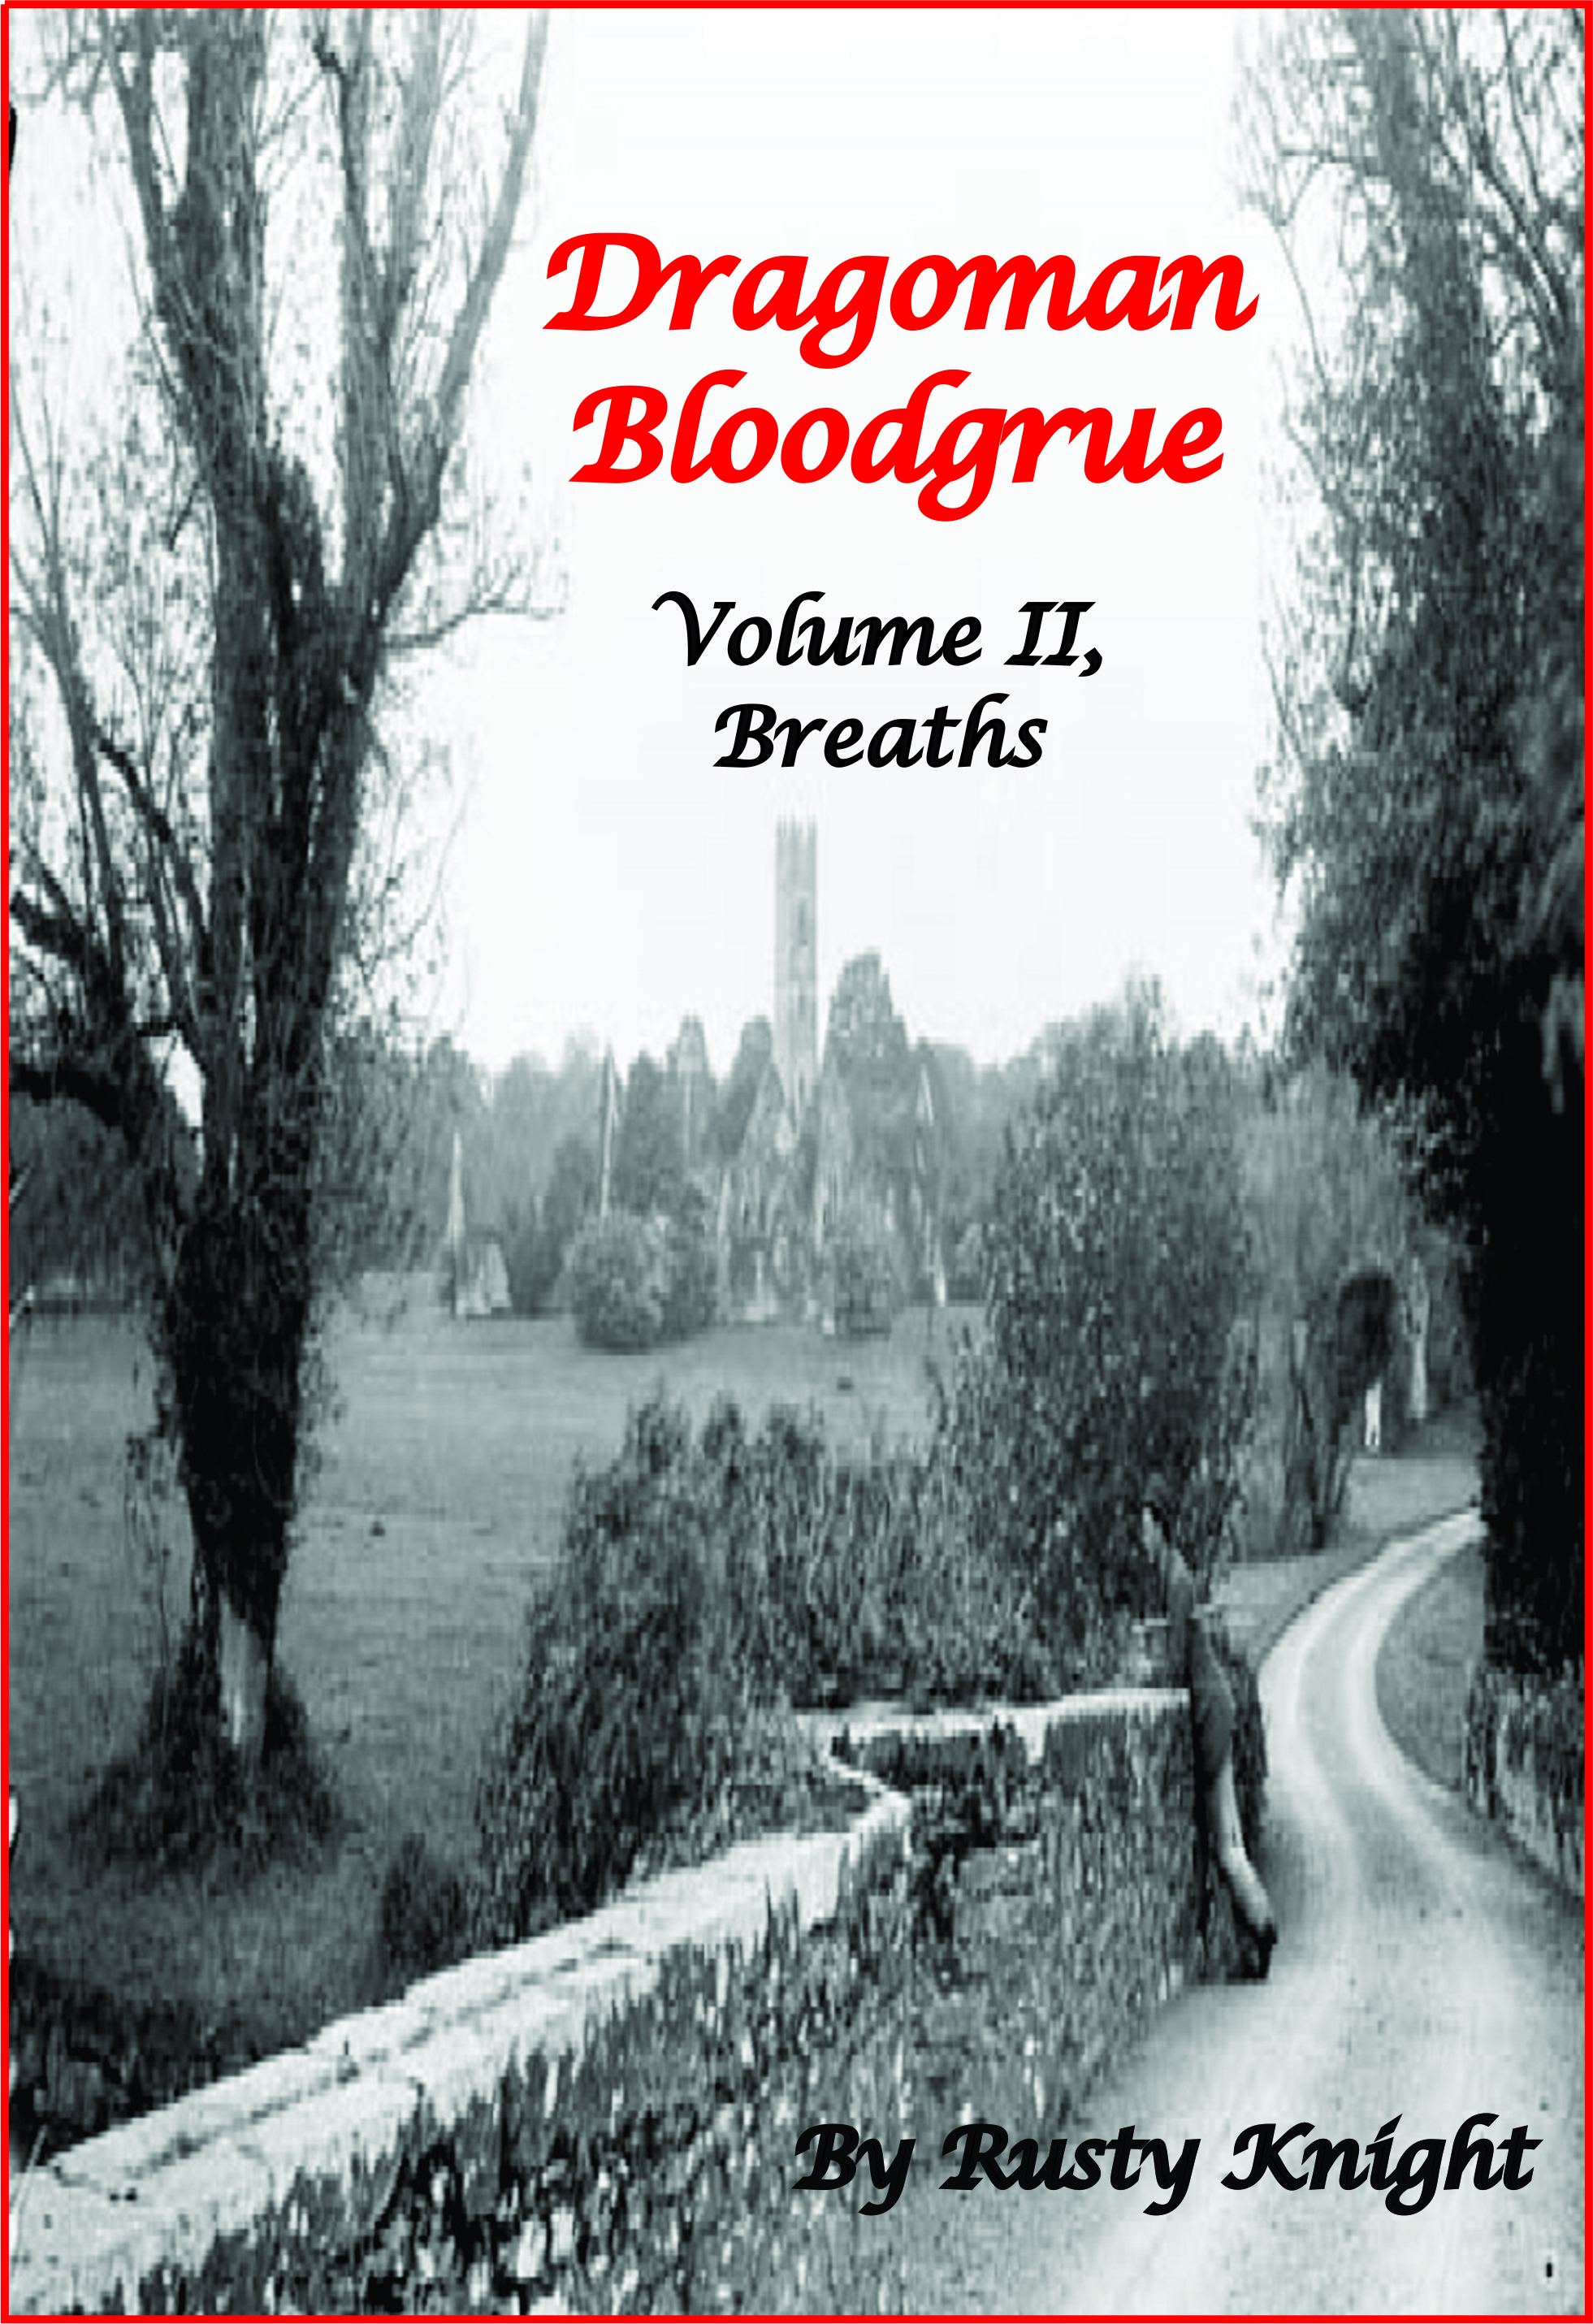 Dragoman Bloodgrue Volume II: Breaths, e-copy DB17DCV002